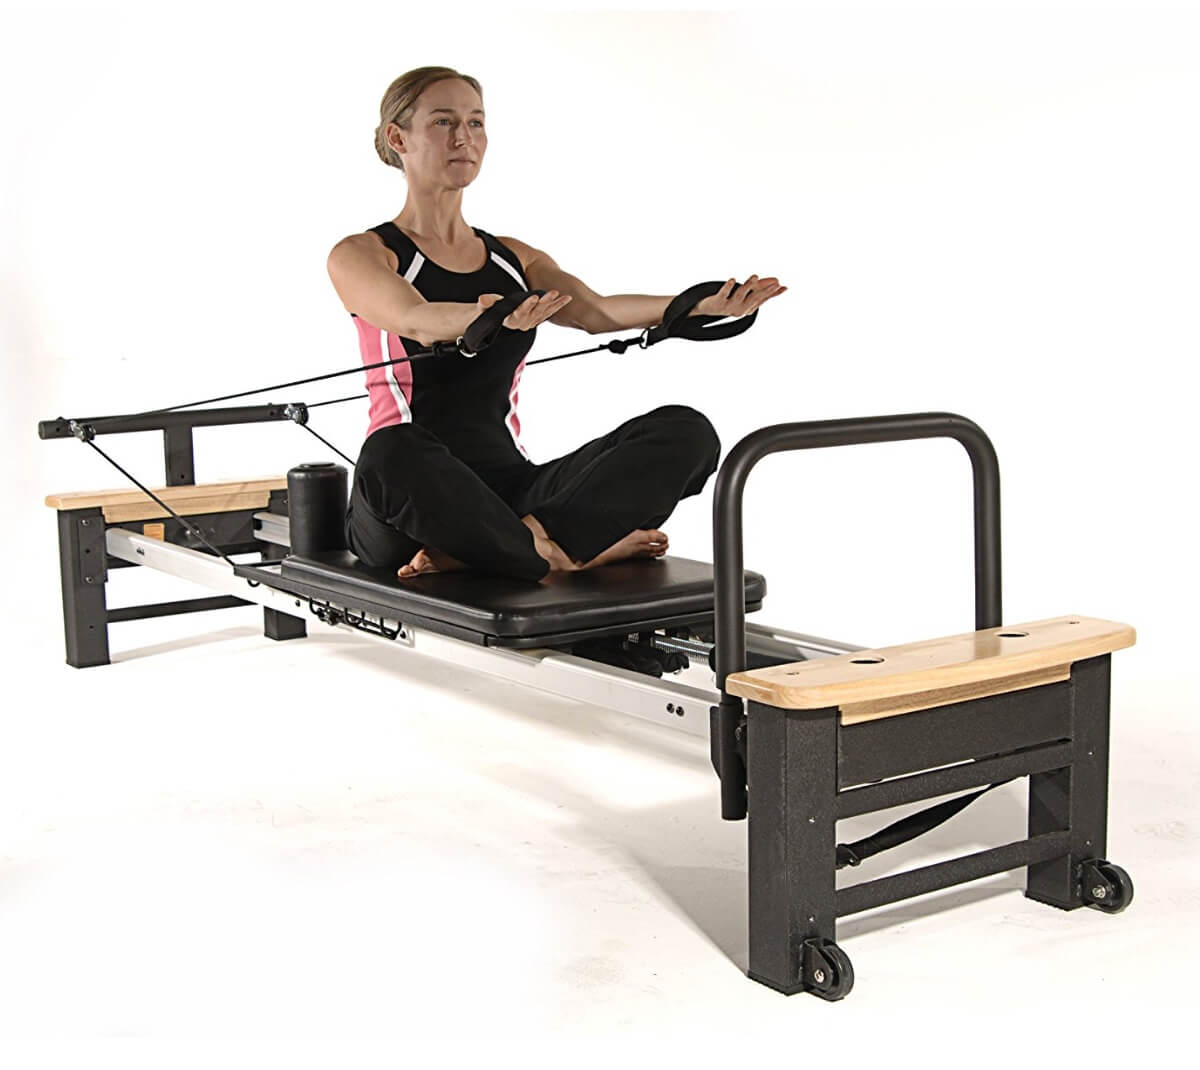 Stamina AeroPilates Pro XP 556 Home Pilates